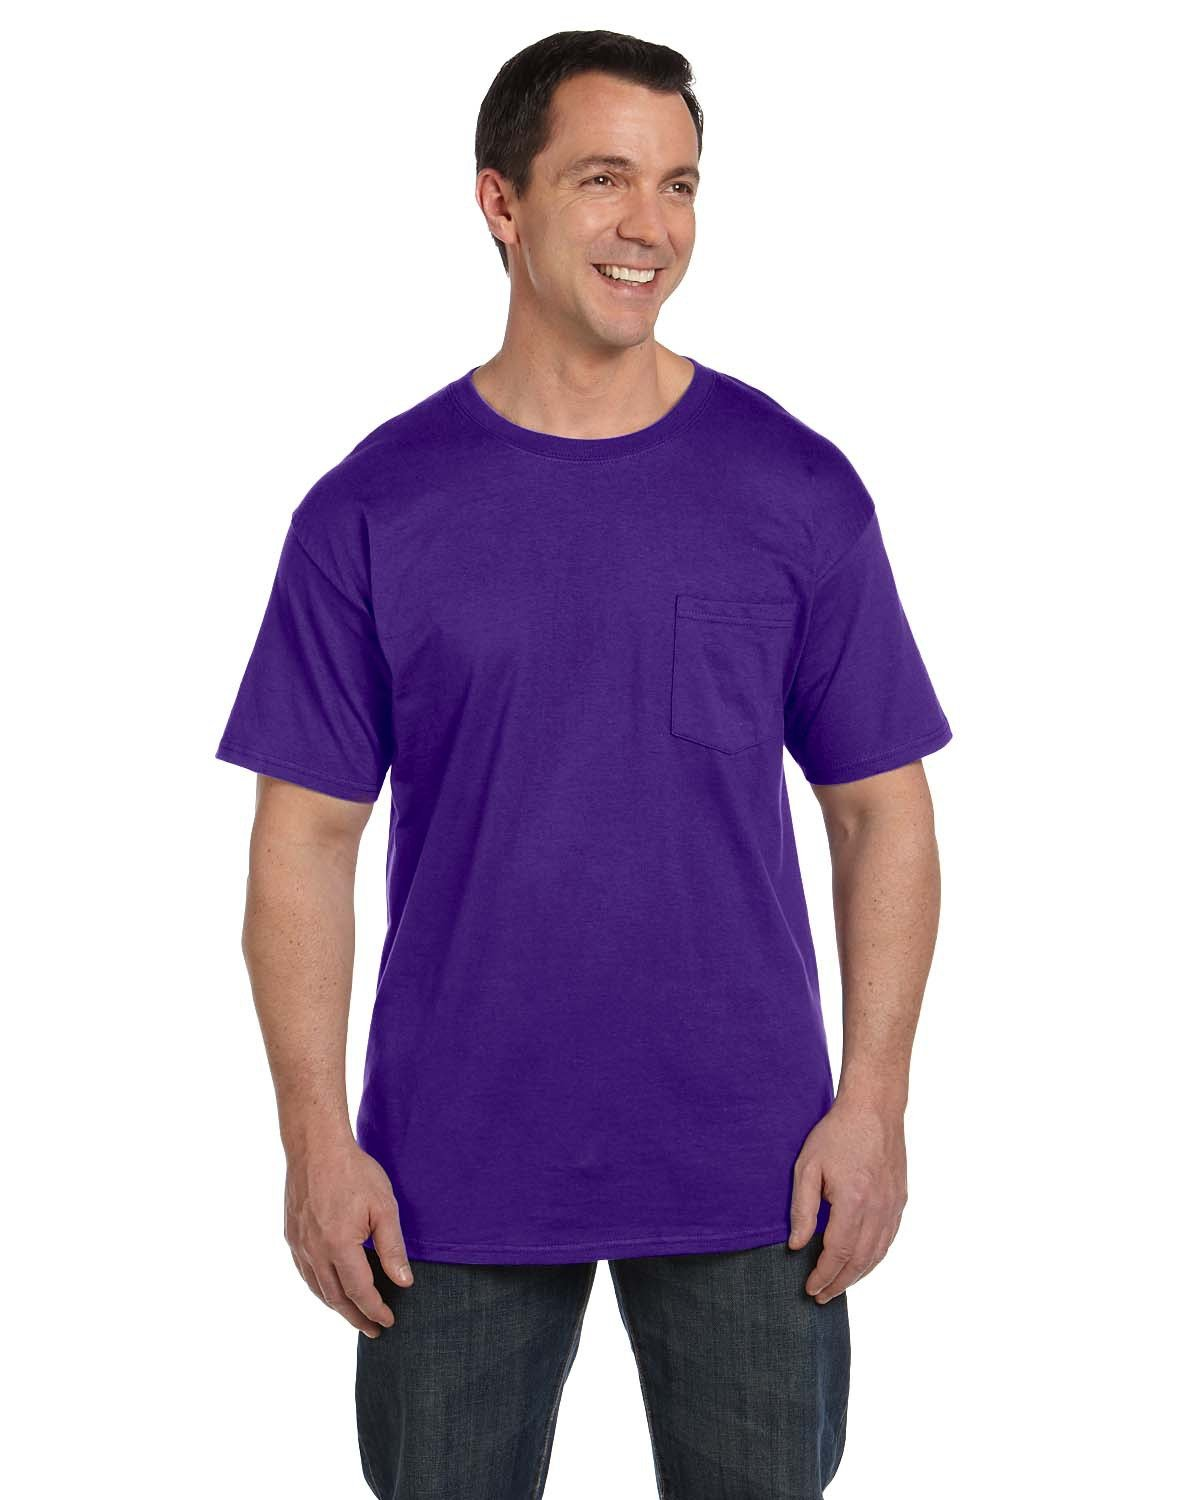 Hanes Adult Beefy-T® with Pocket PURPLE